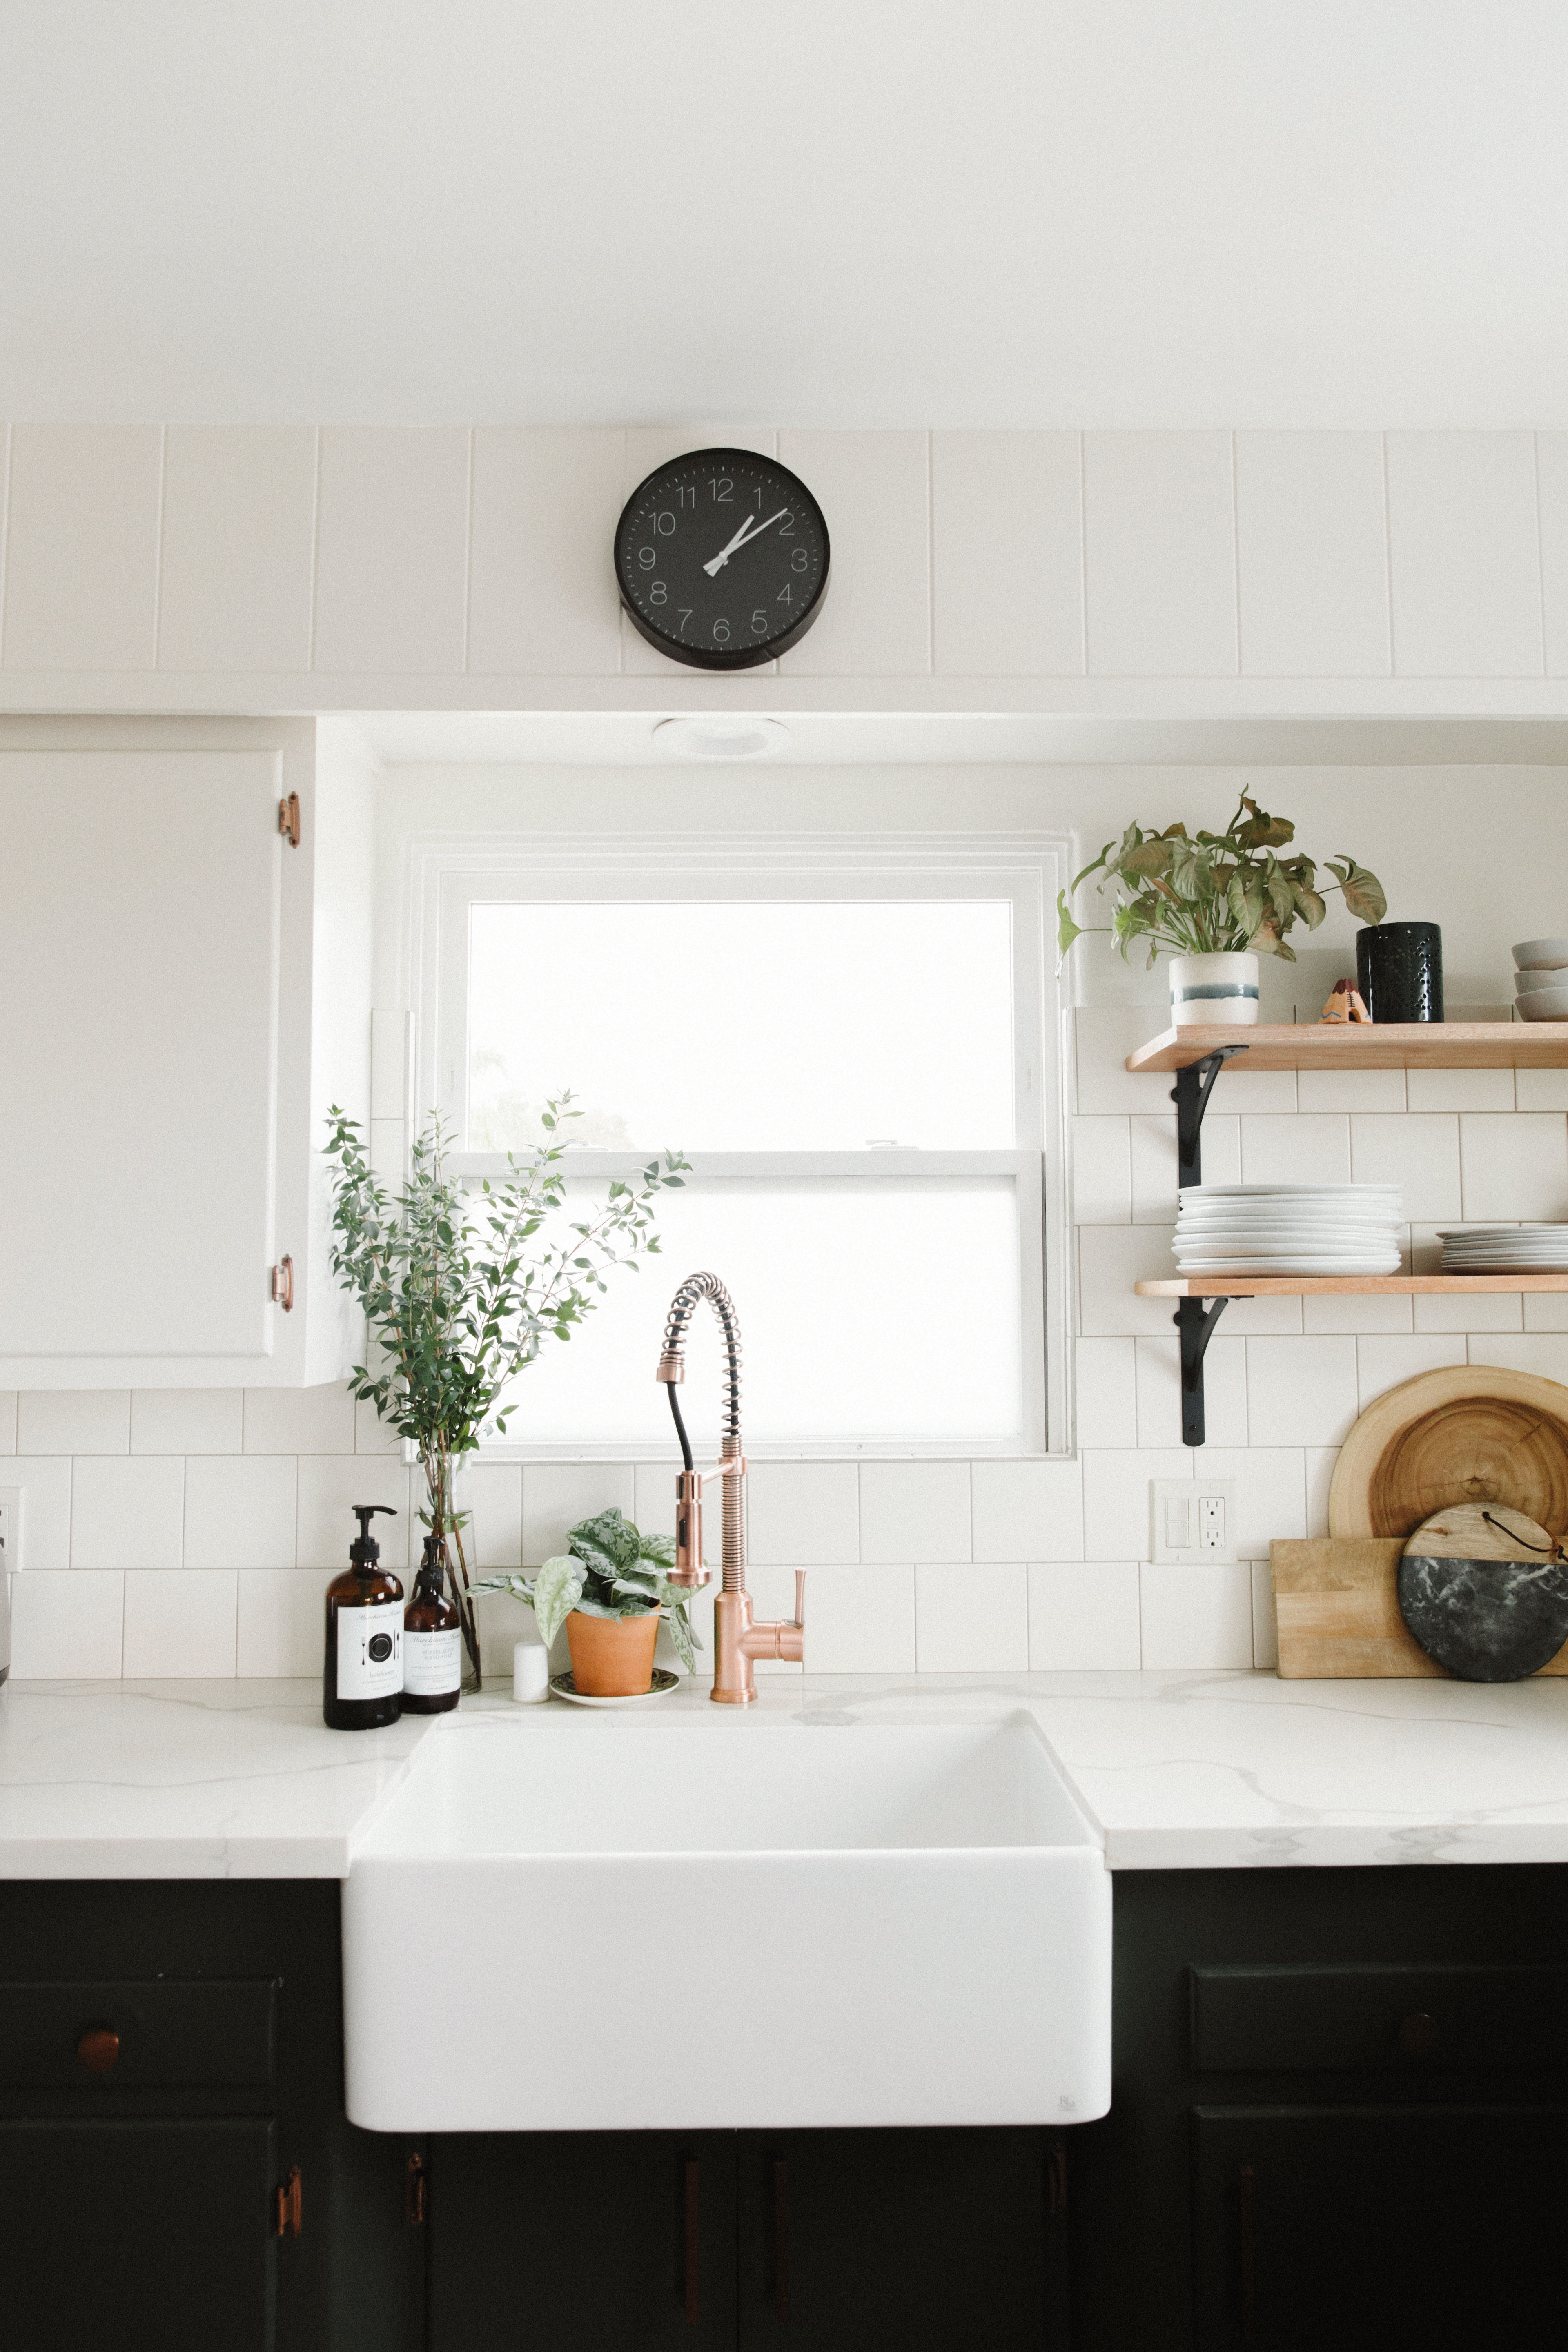 How to Keep a White Kitchen Sink Really and Truly Clean